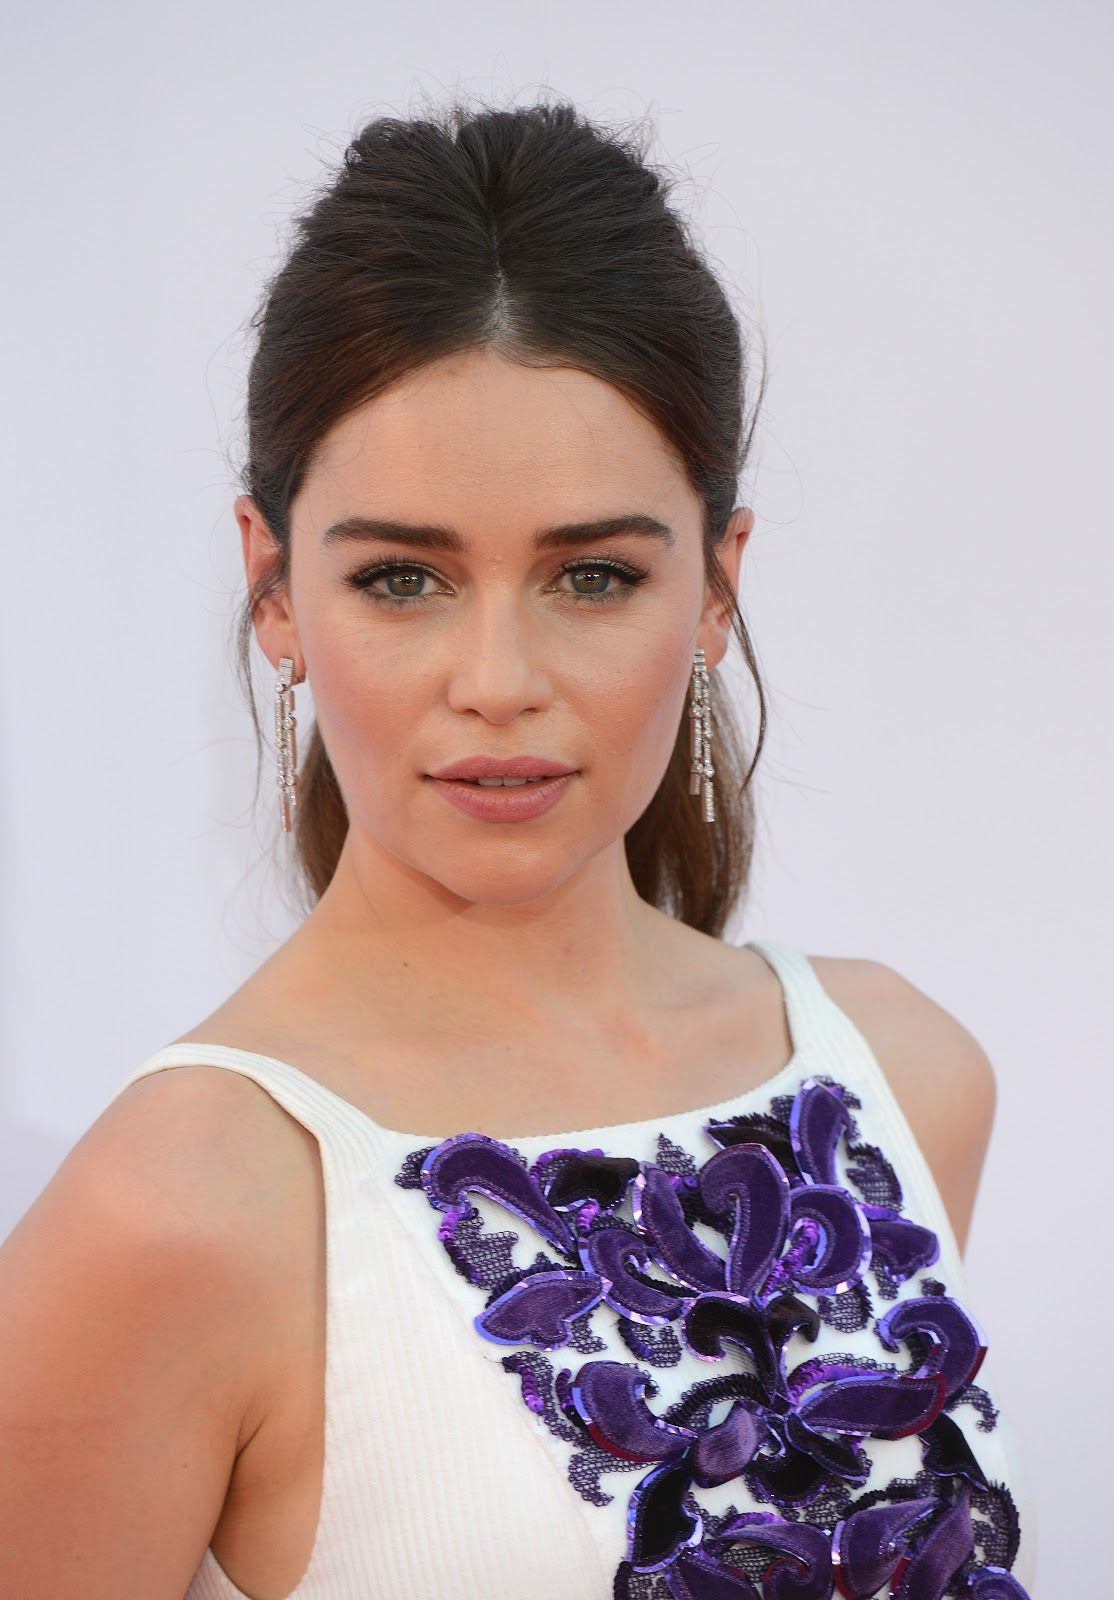 Terminator Genisys Actress Emilia Clarke Full HD Images and 1114x1600